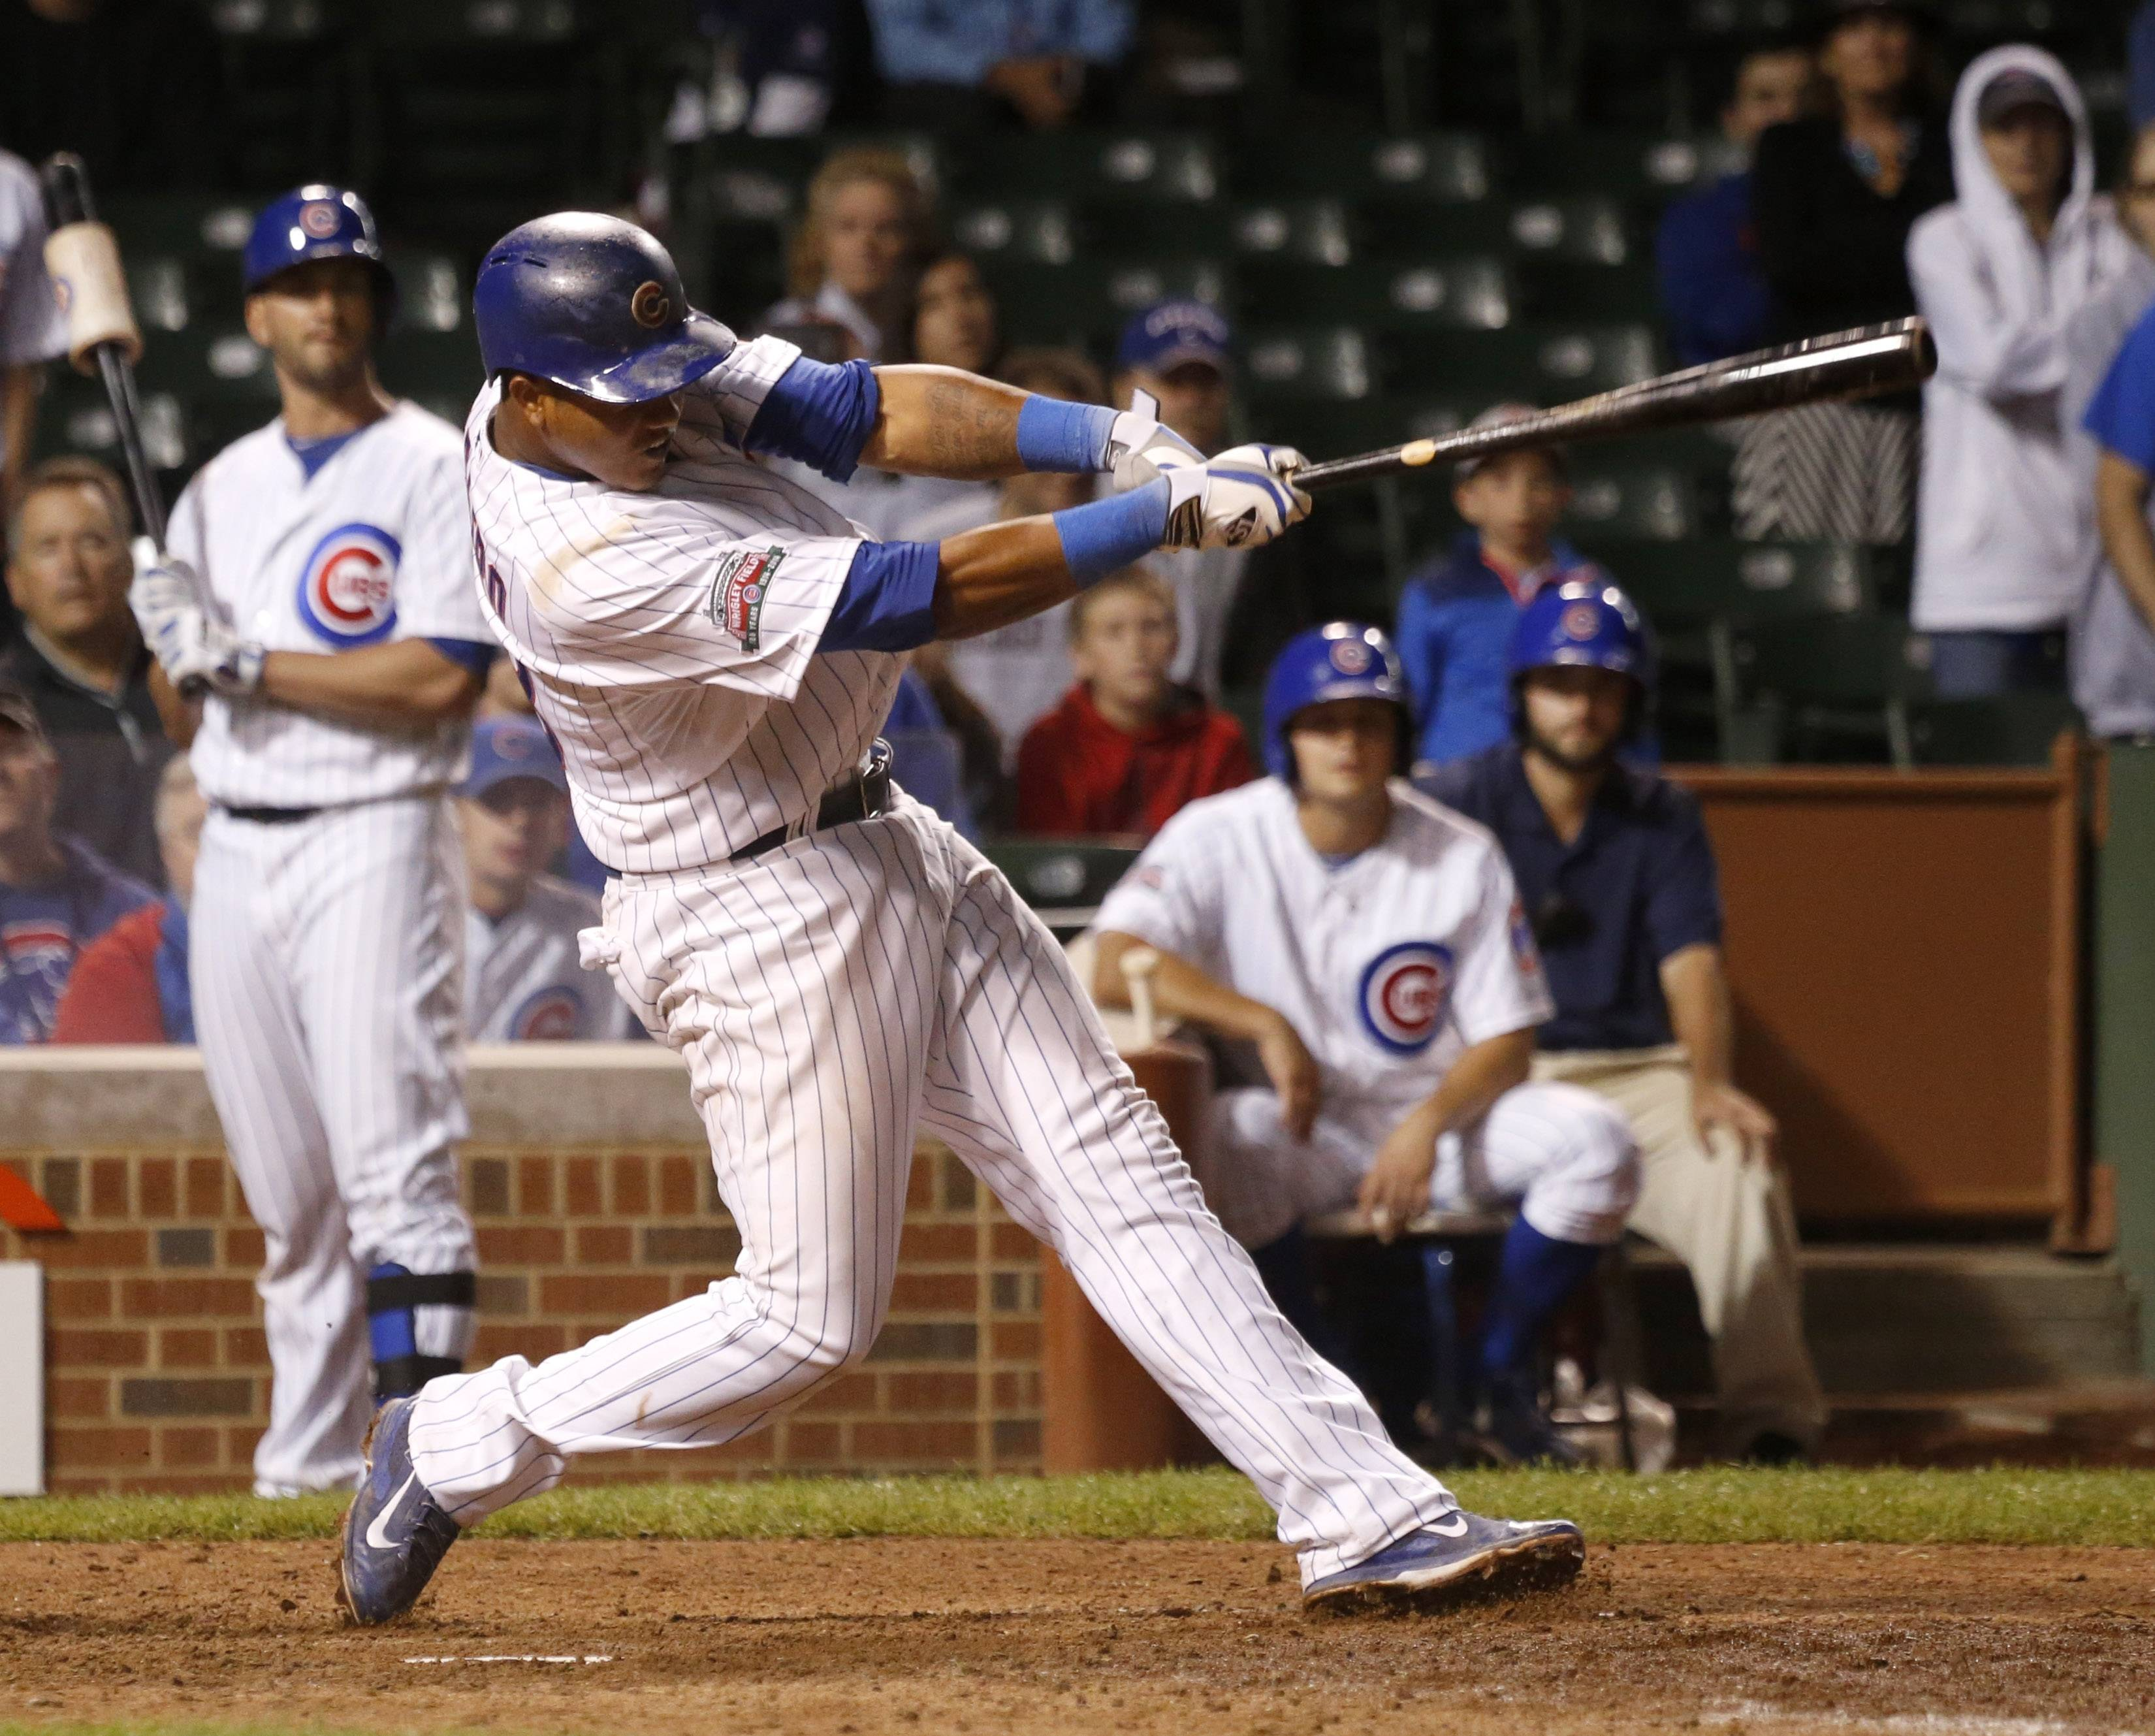 Starlin Castro hits a sacrifice fly to score John Baker in the 16th inning and give the Cubs a 4-3 win over the Rockies early Wednesday at Wrigley Field.